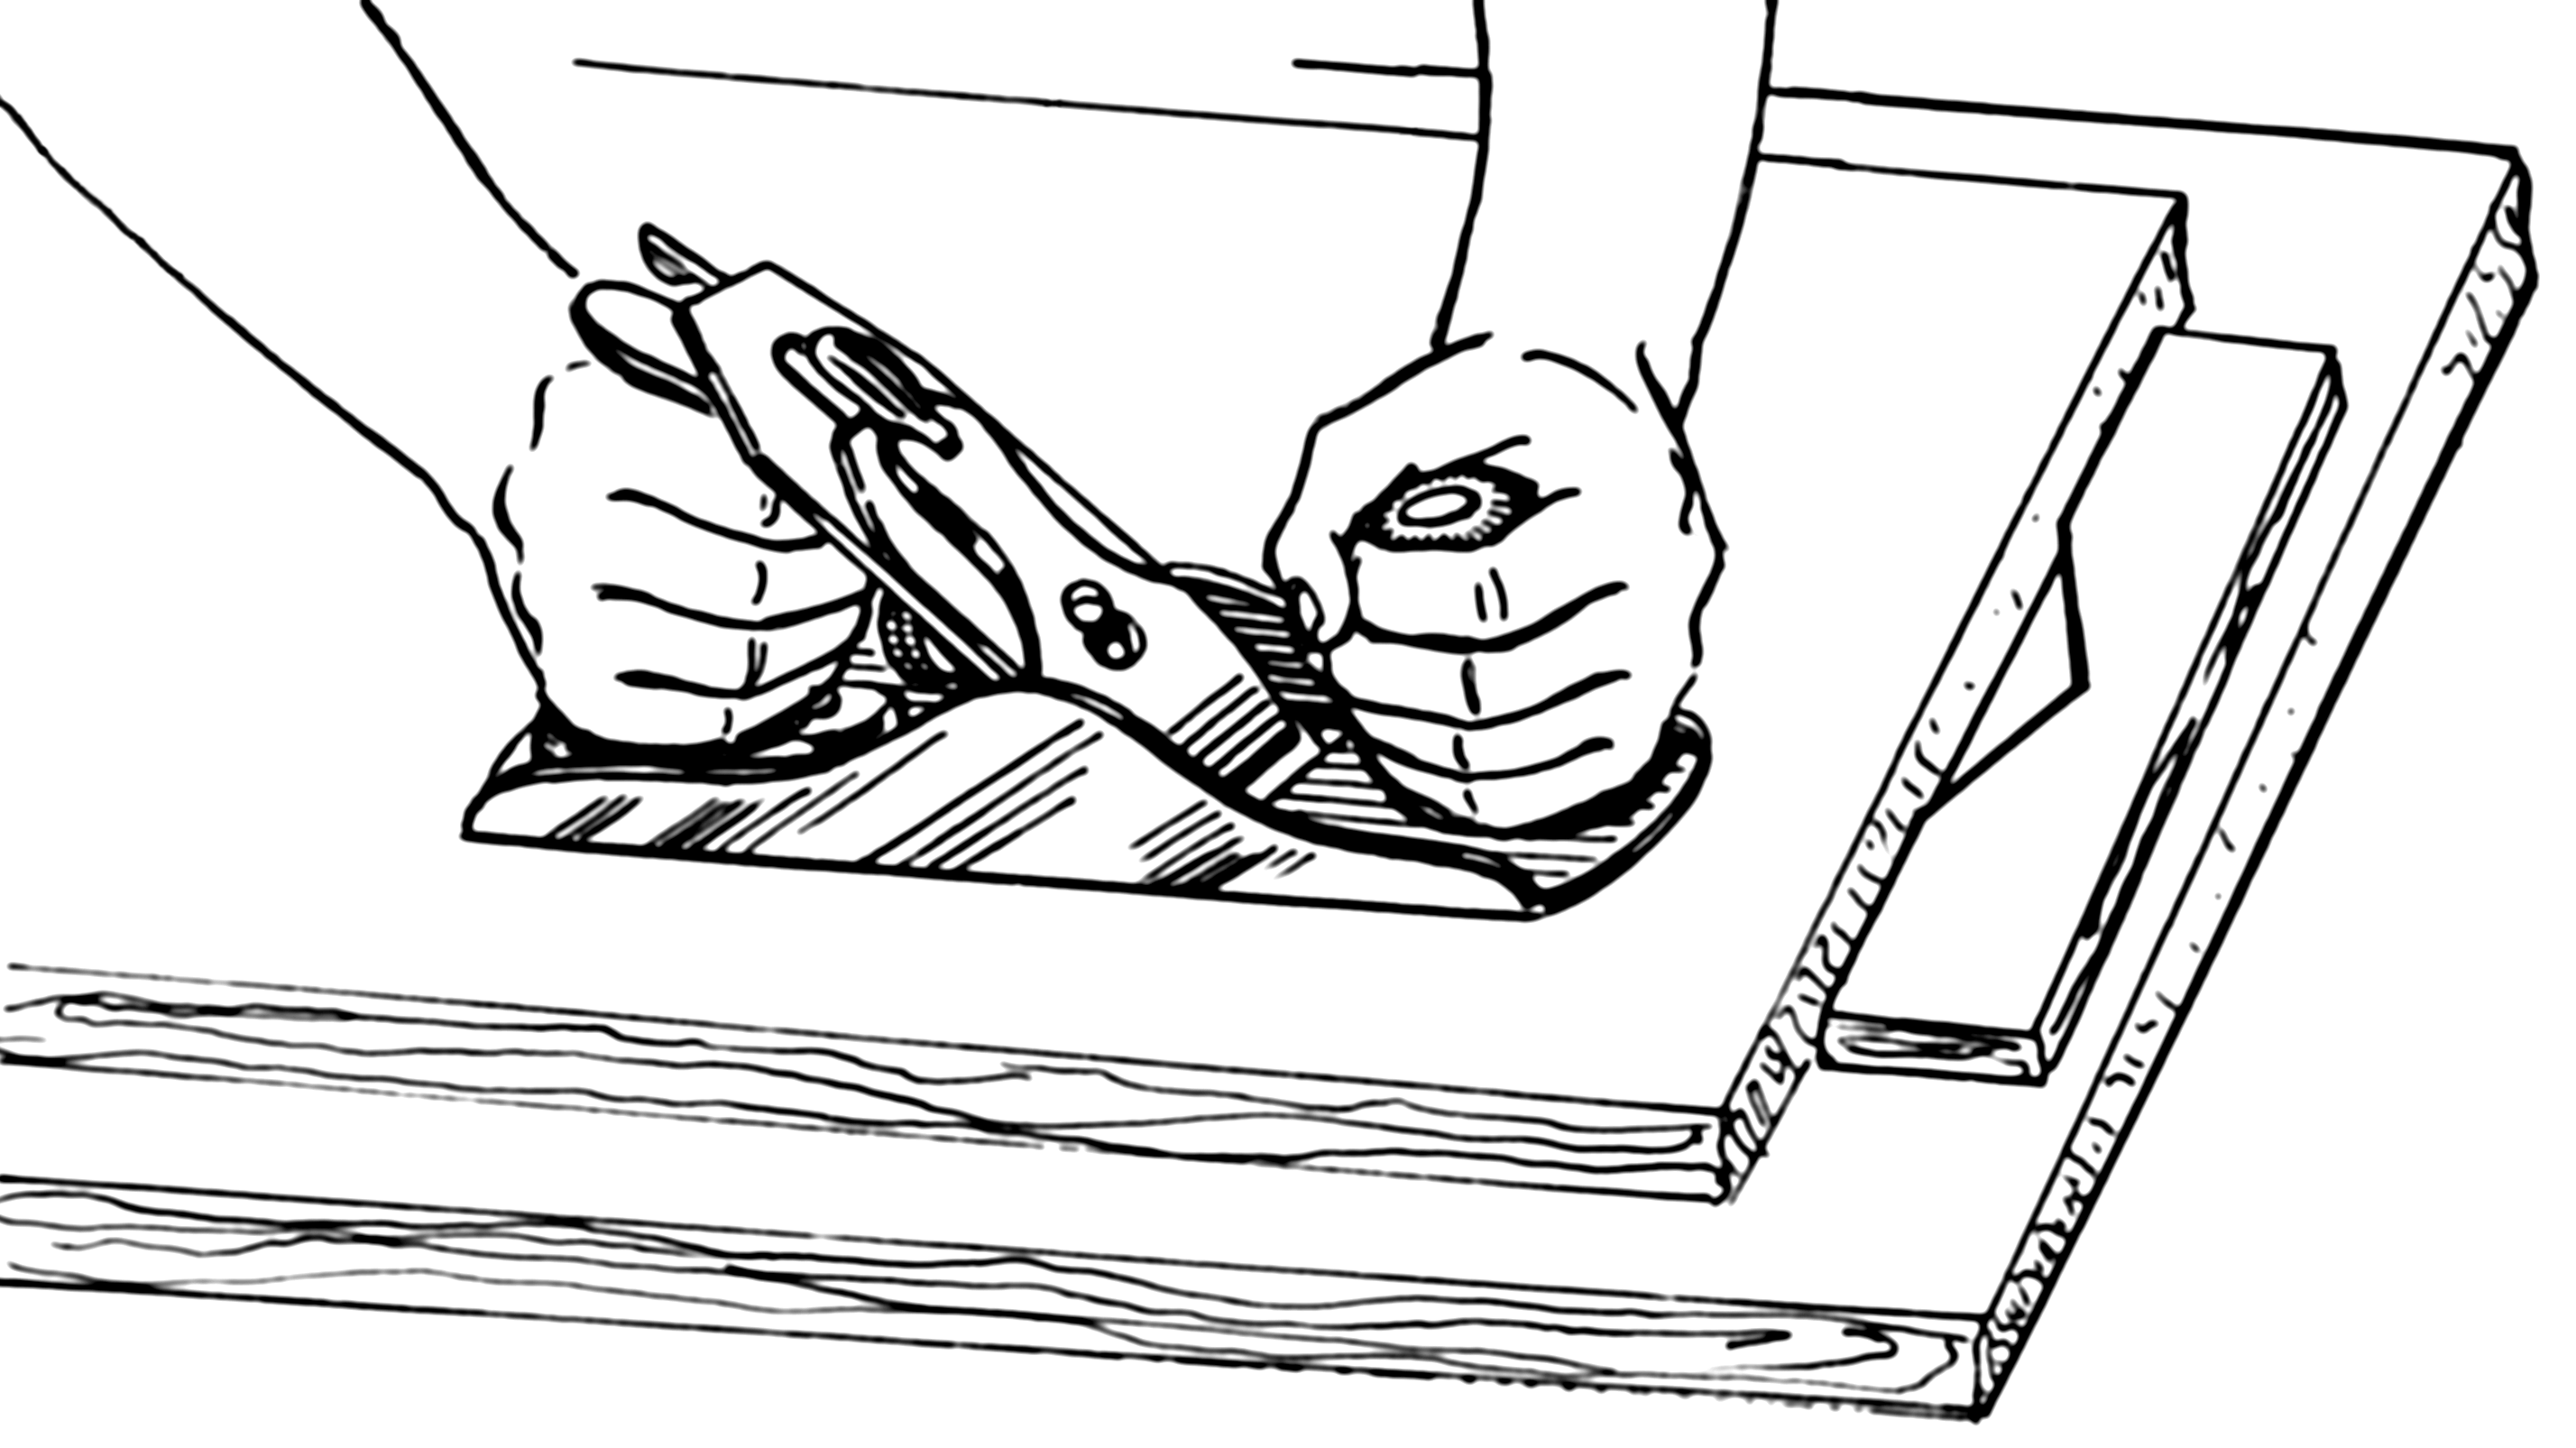 file tool drawing. file:plane tool (psf).png file drawing f